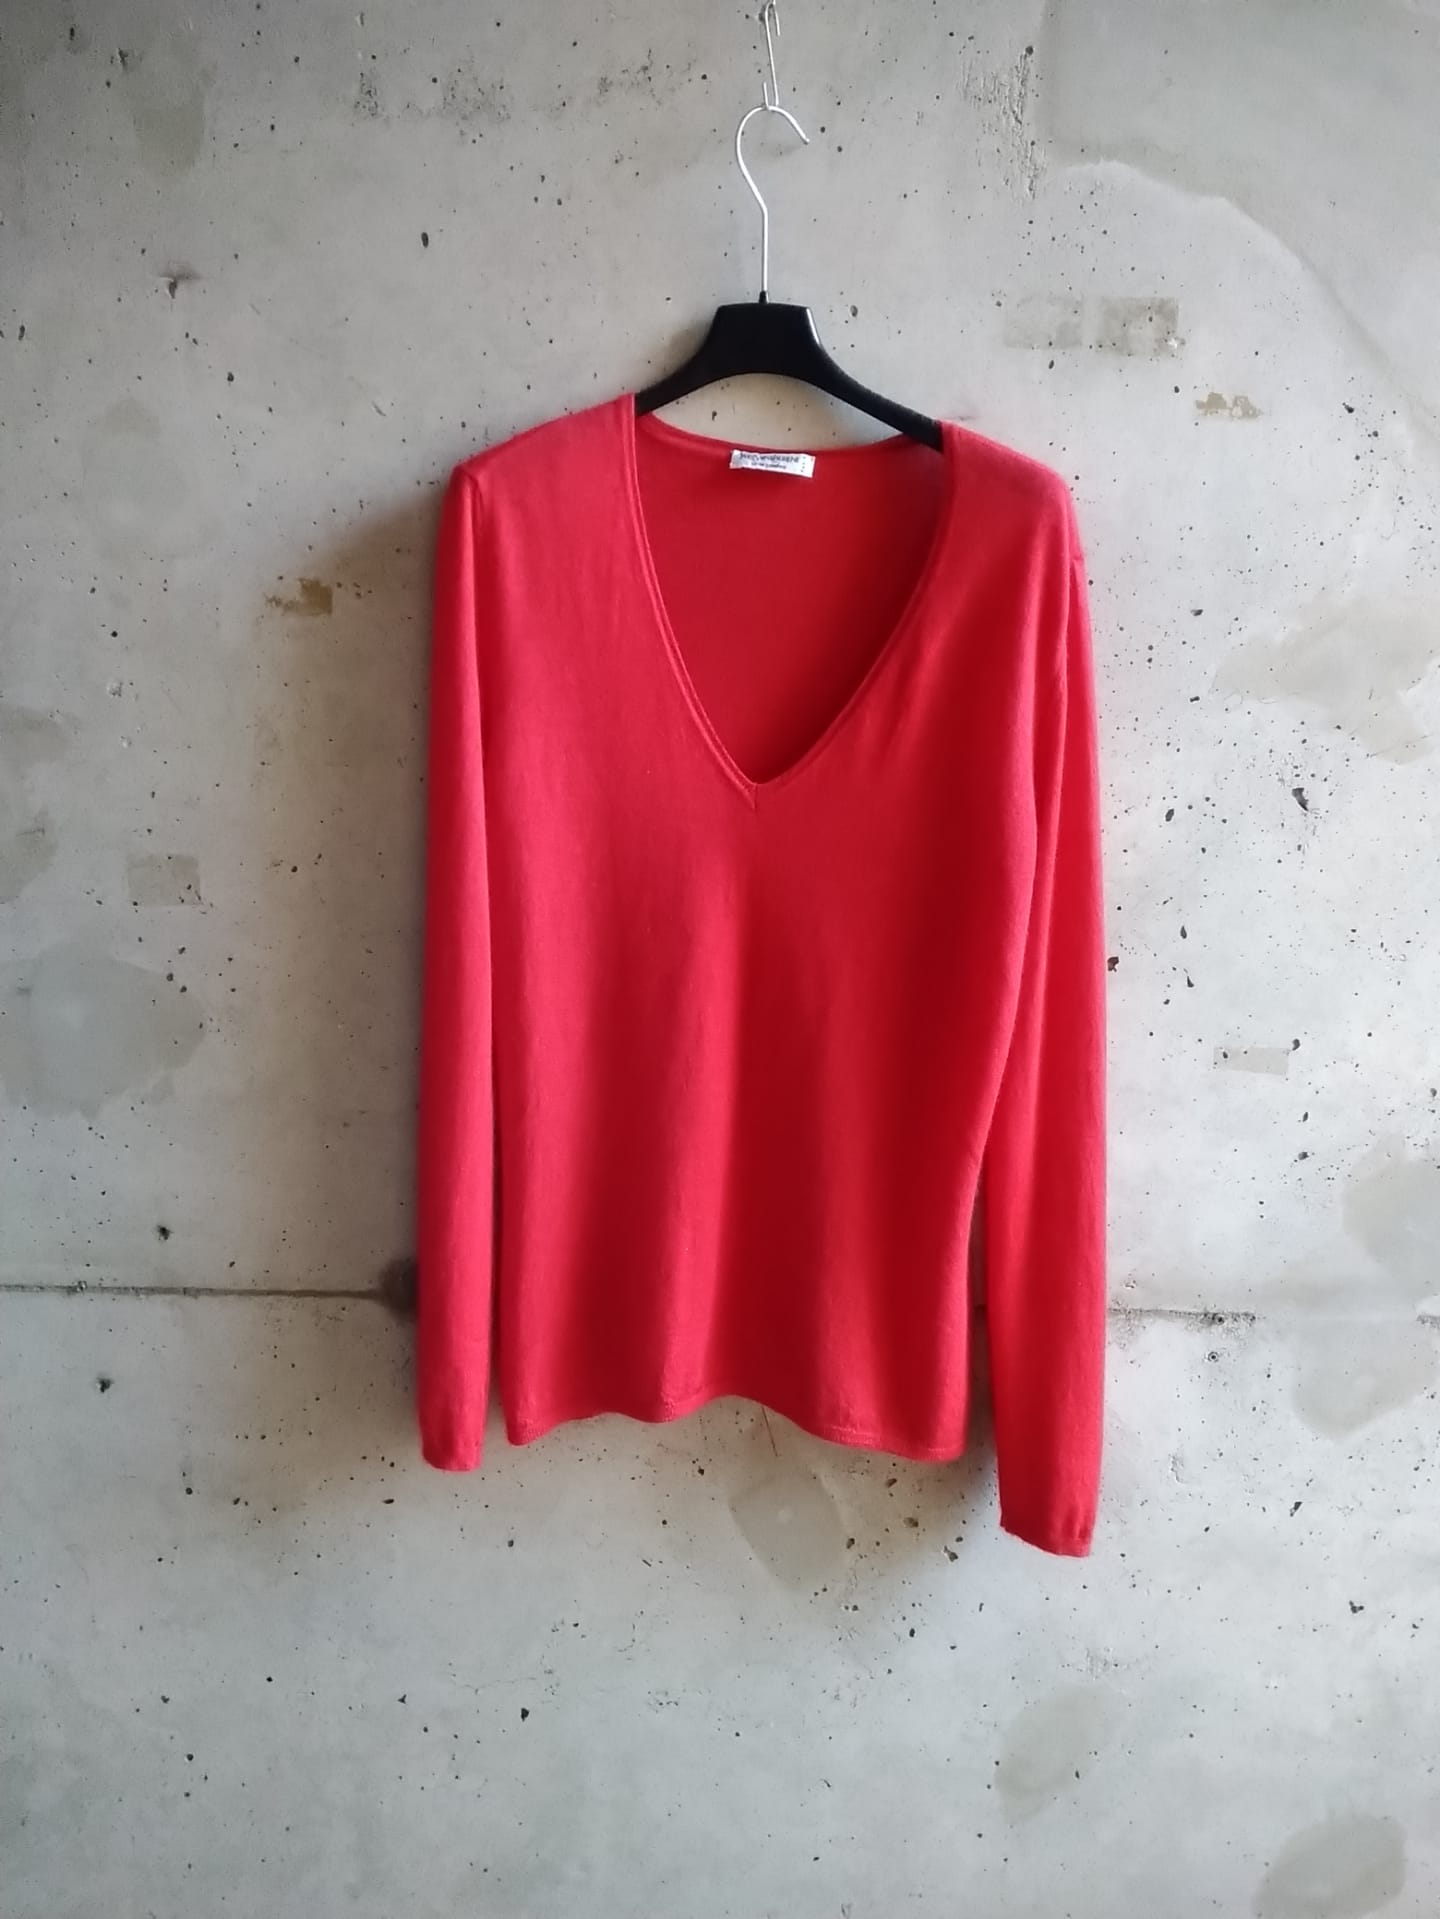 Yves Saint Laurent rasperry cashmere sweater